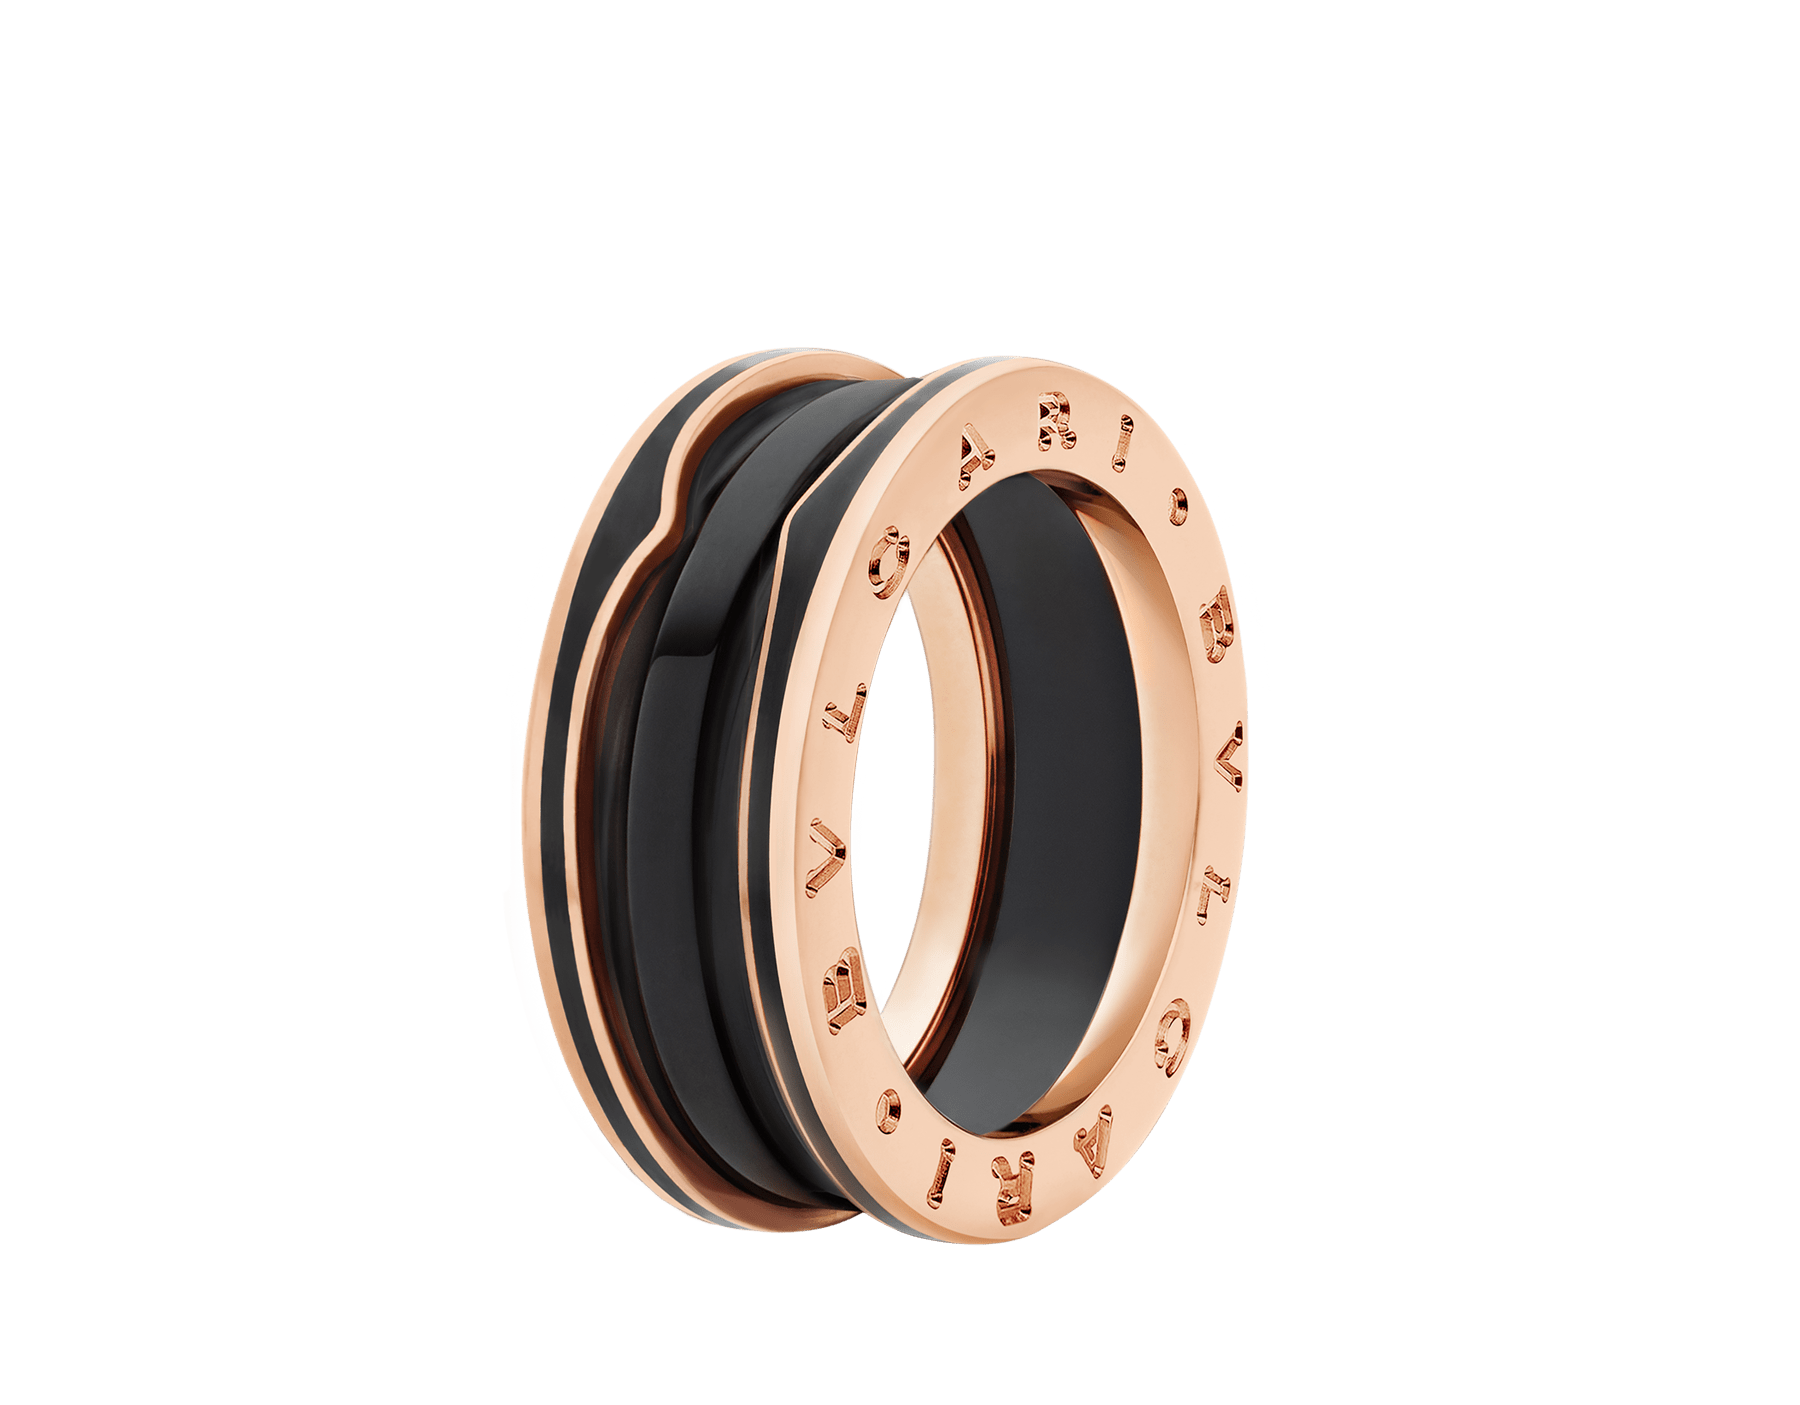 B.zero1 two-band ring in 18 kt rose gold with matte black ceramic AN858853 image 1